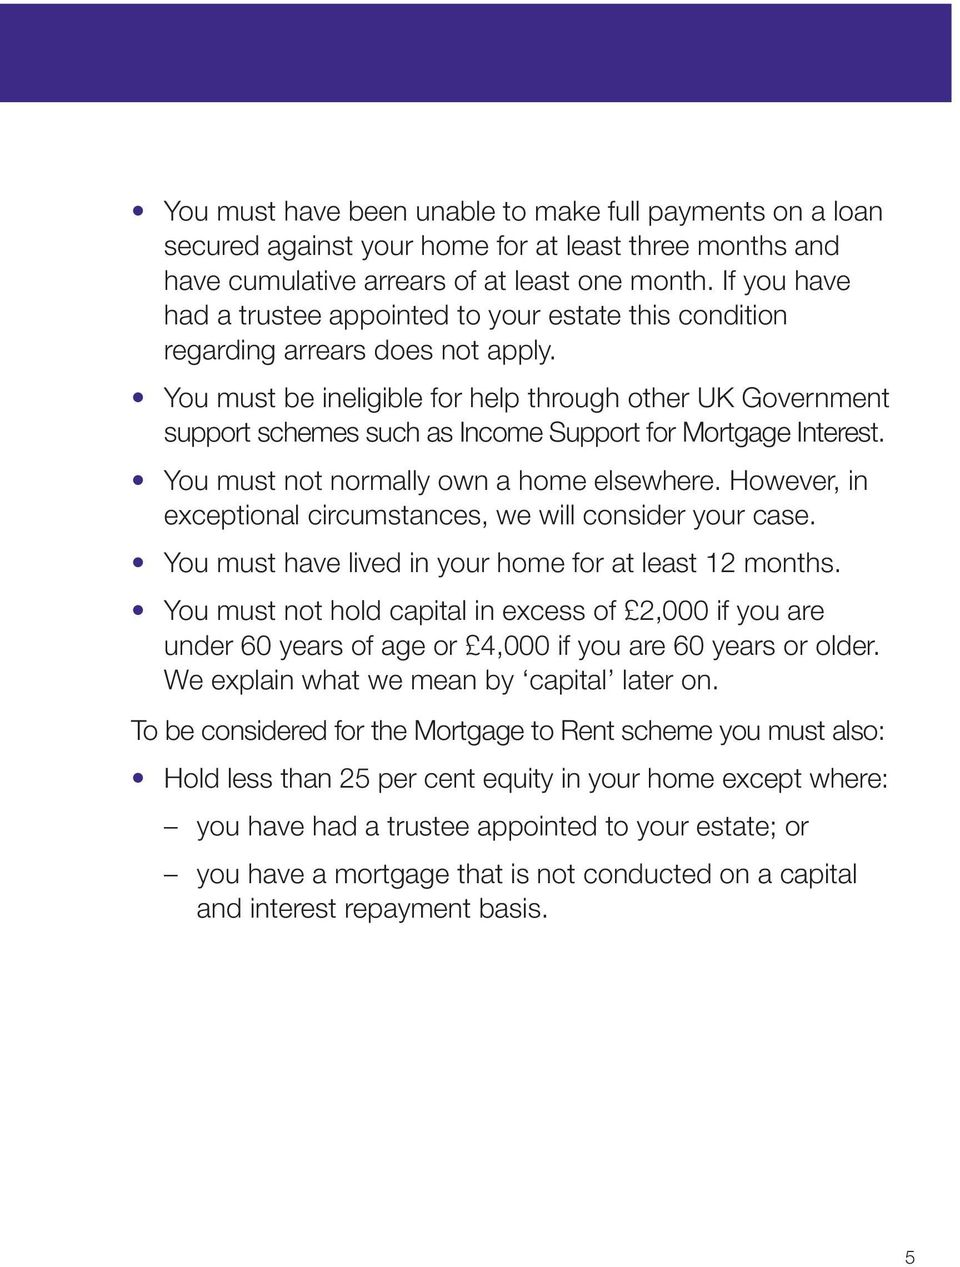 You must be ineligible for help through other UK Government support schemes such as Income Support for Mortgage Interest. You must not normally own a home elsewhere.